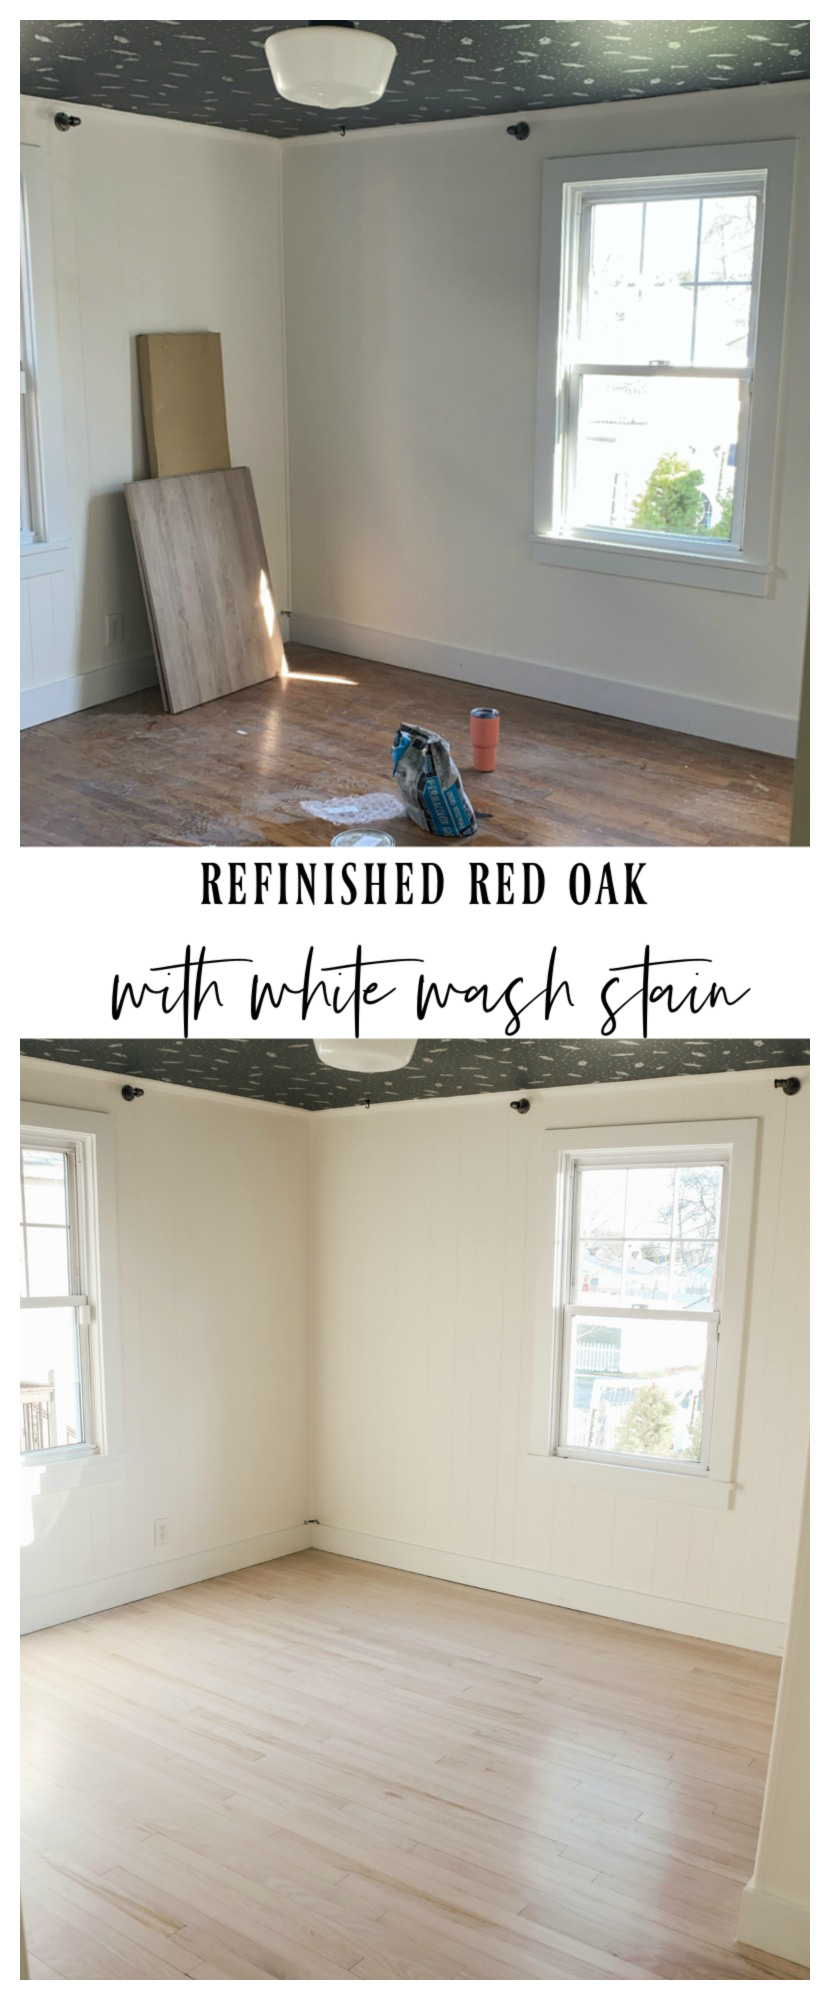 How we refinished our red oak floors to white wash